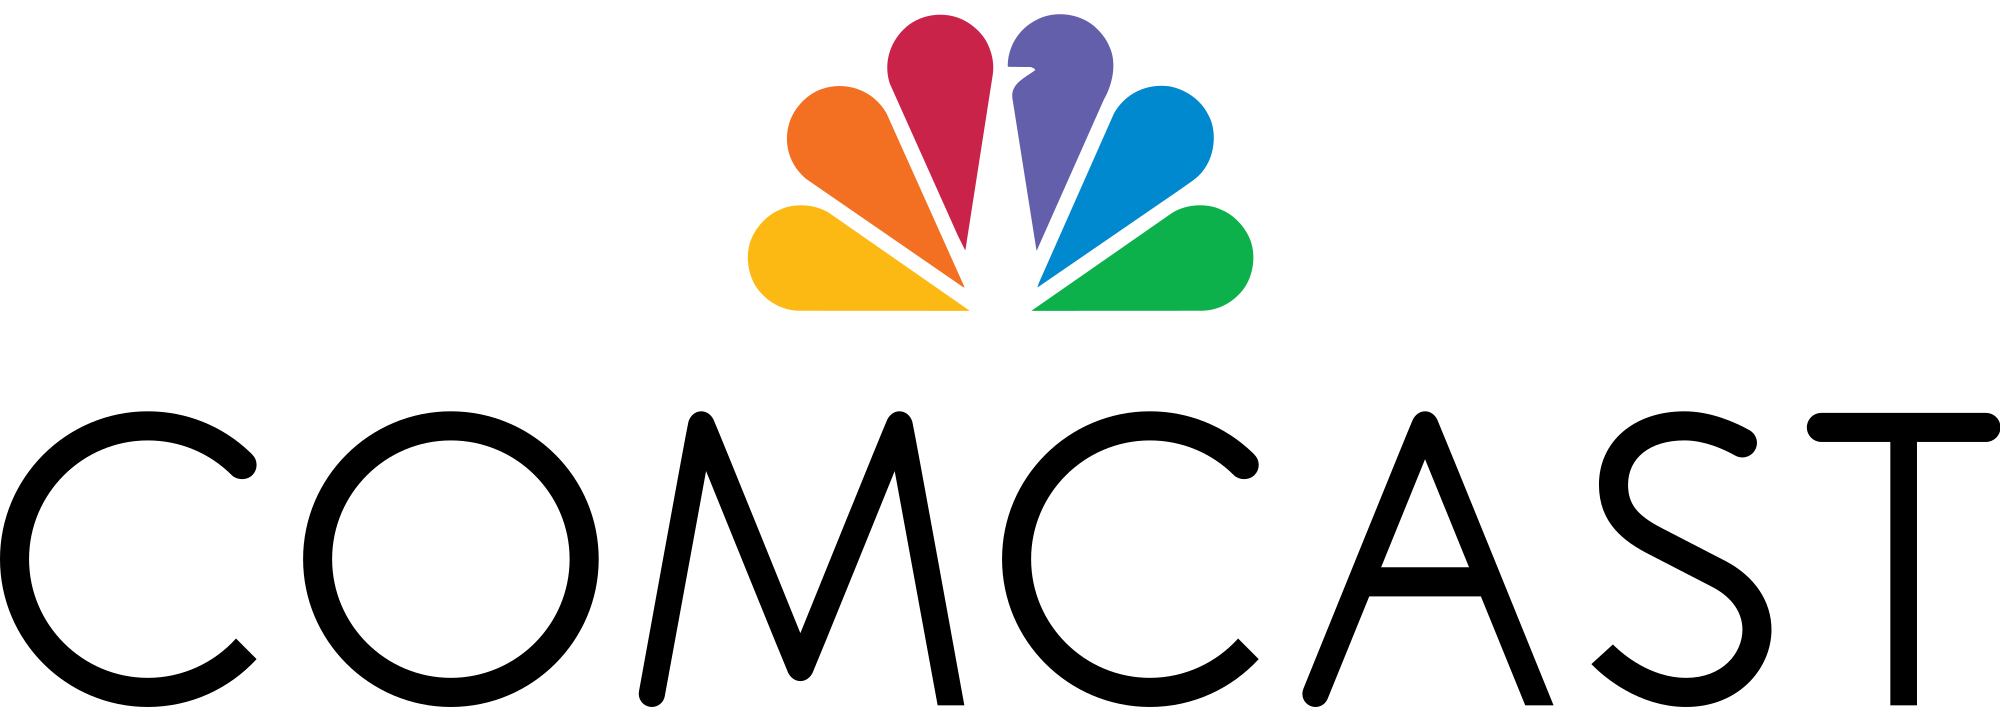 Comcast Logo - File:Comcast Logo.svg - Wikimedia Commons